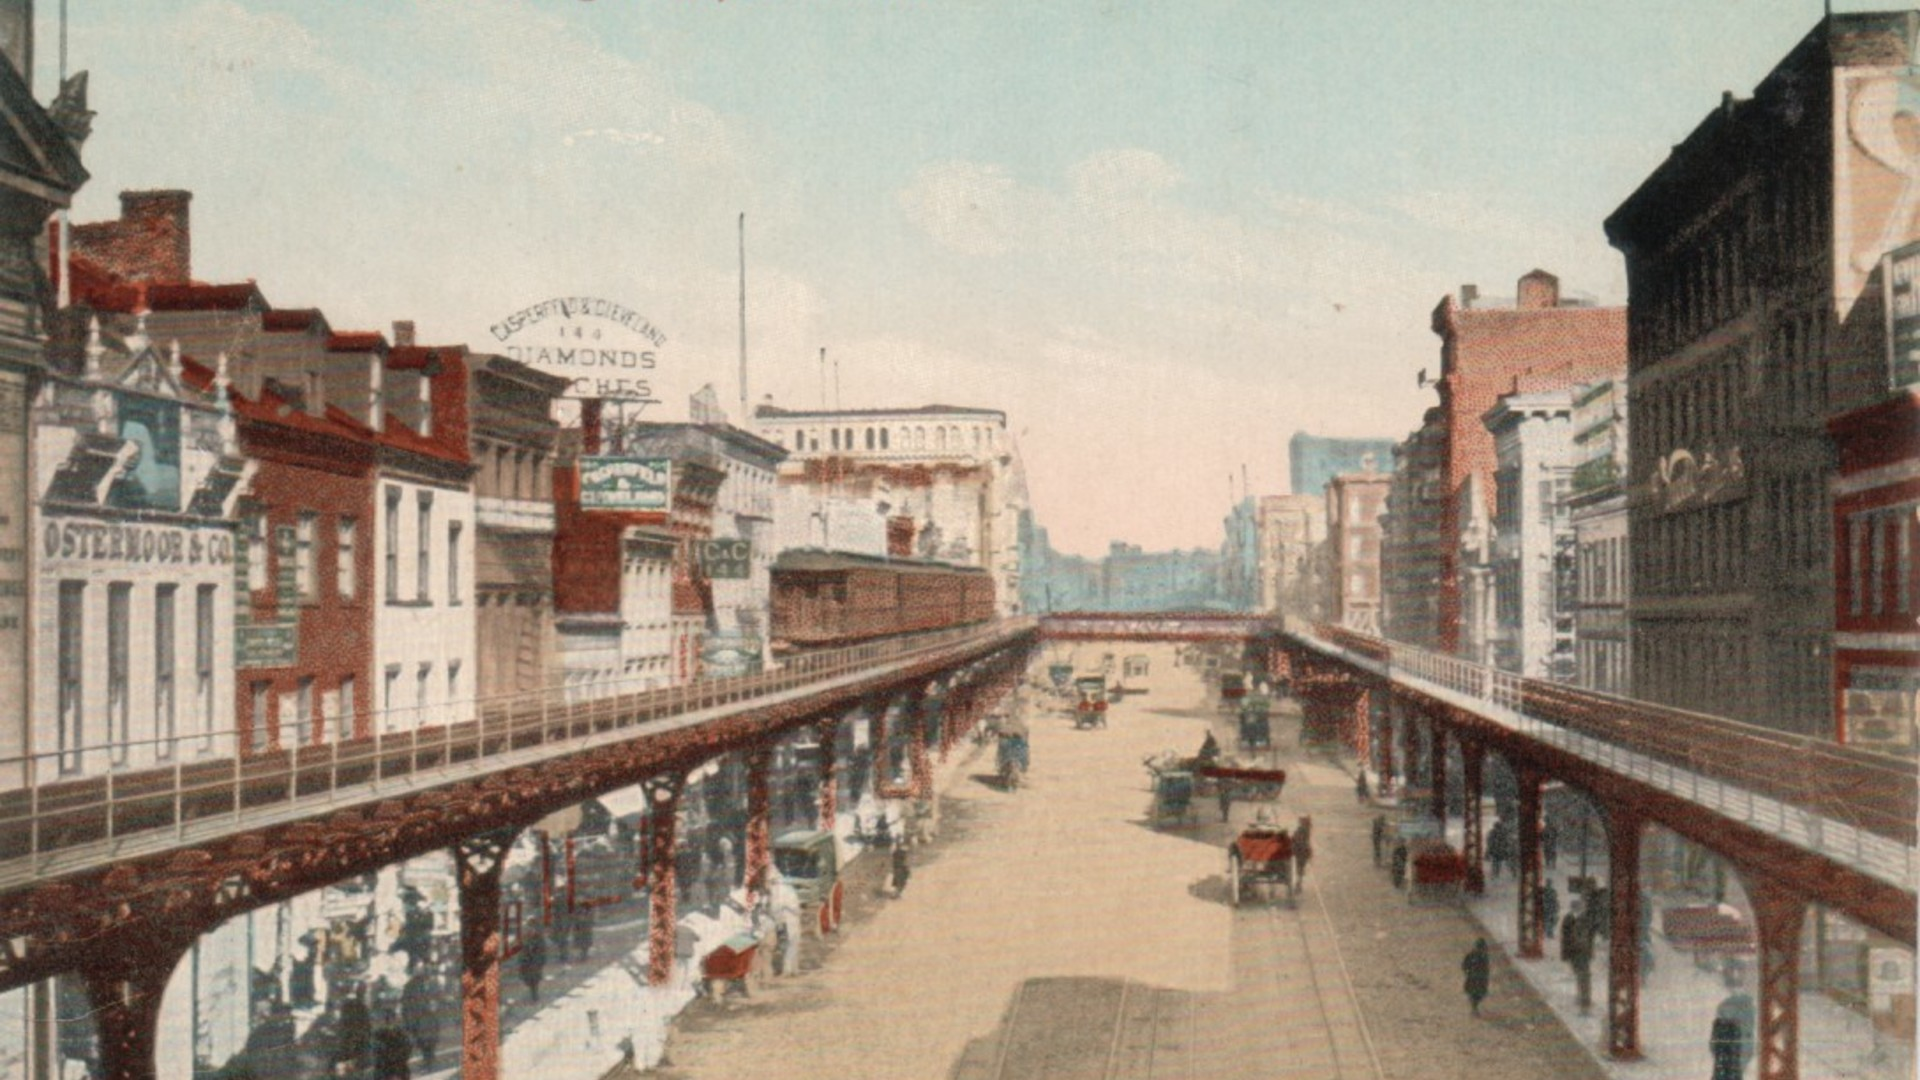 The bowery around 1910